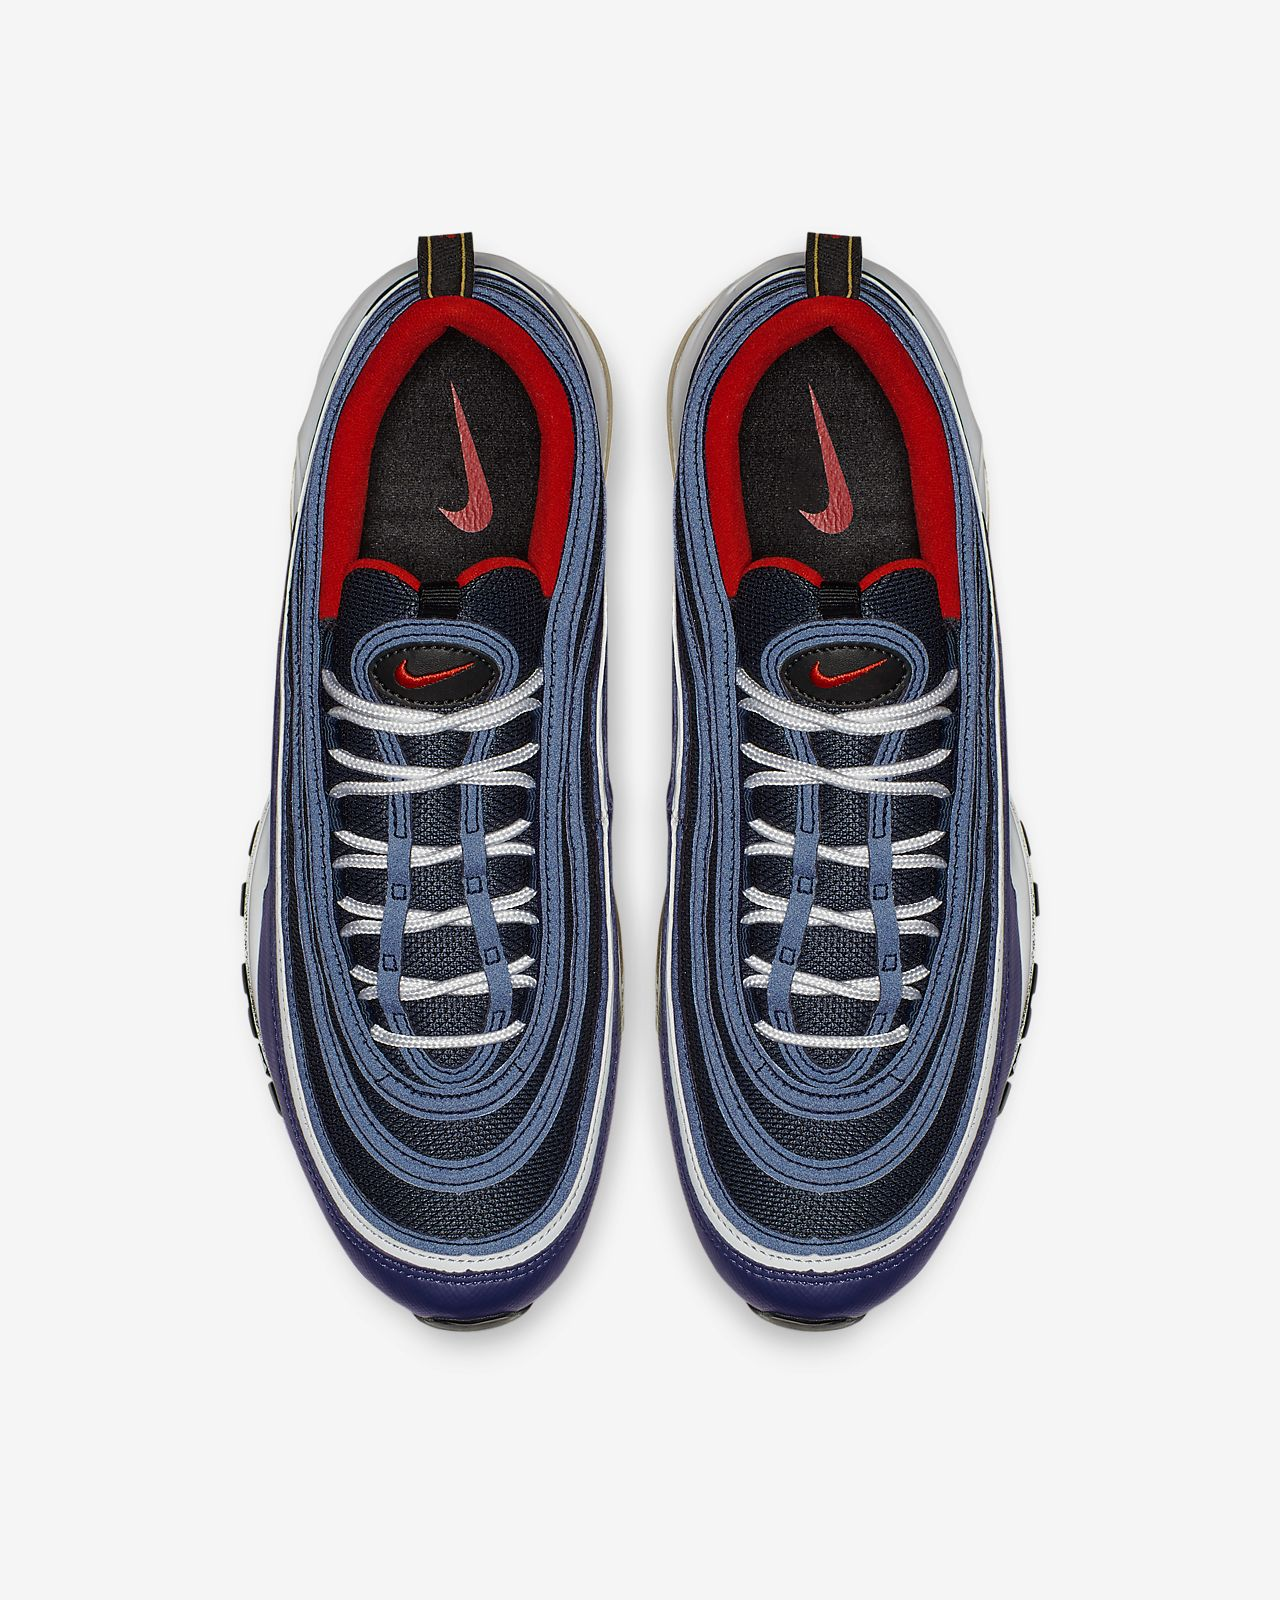 quality design c913e 8f42f ... Chaussure Nike Air Max 97 pour Homme